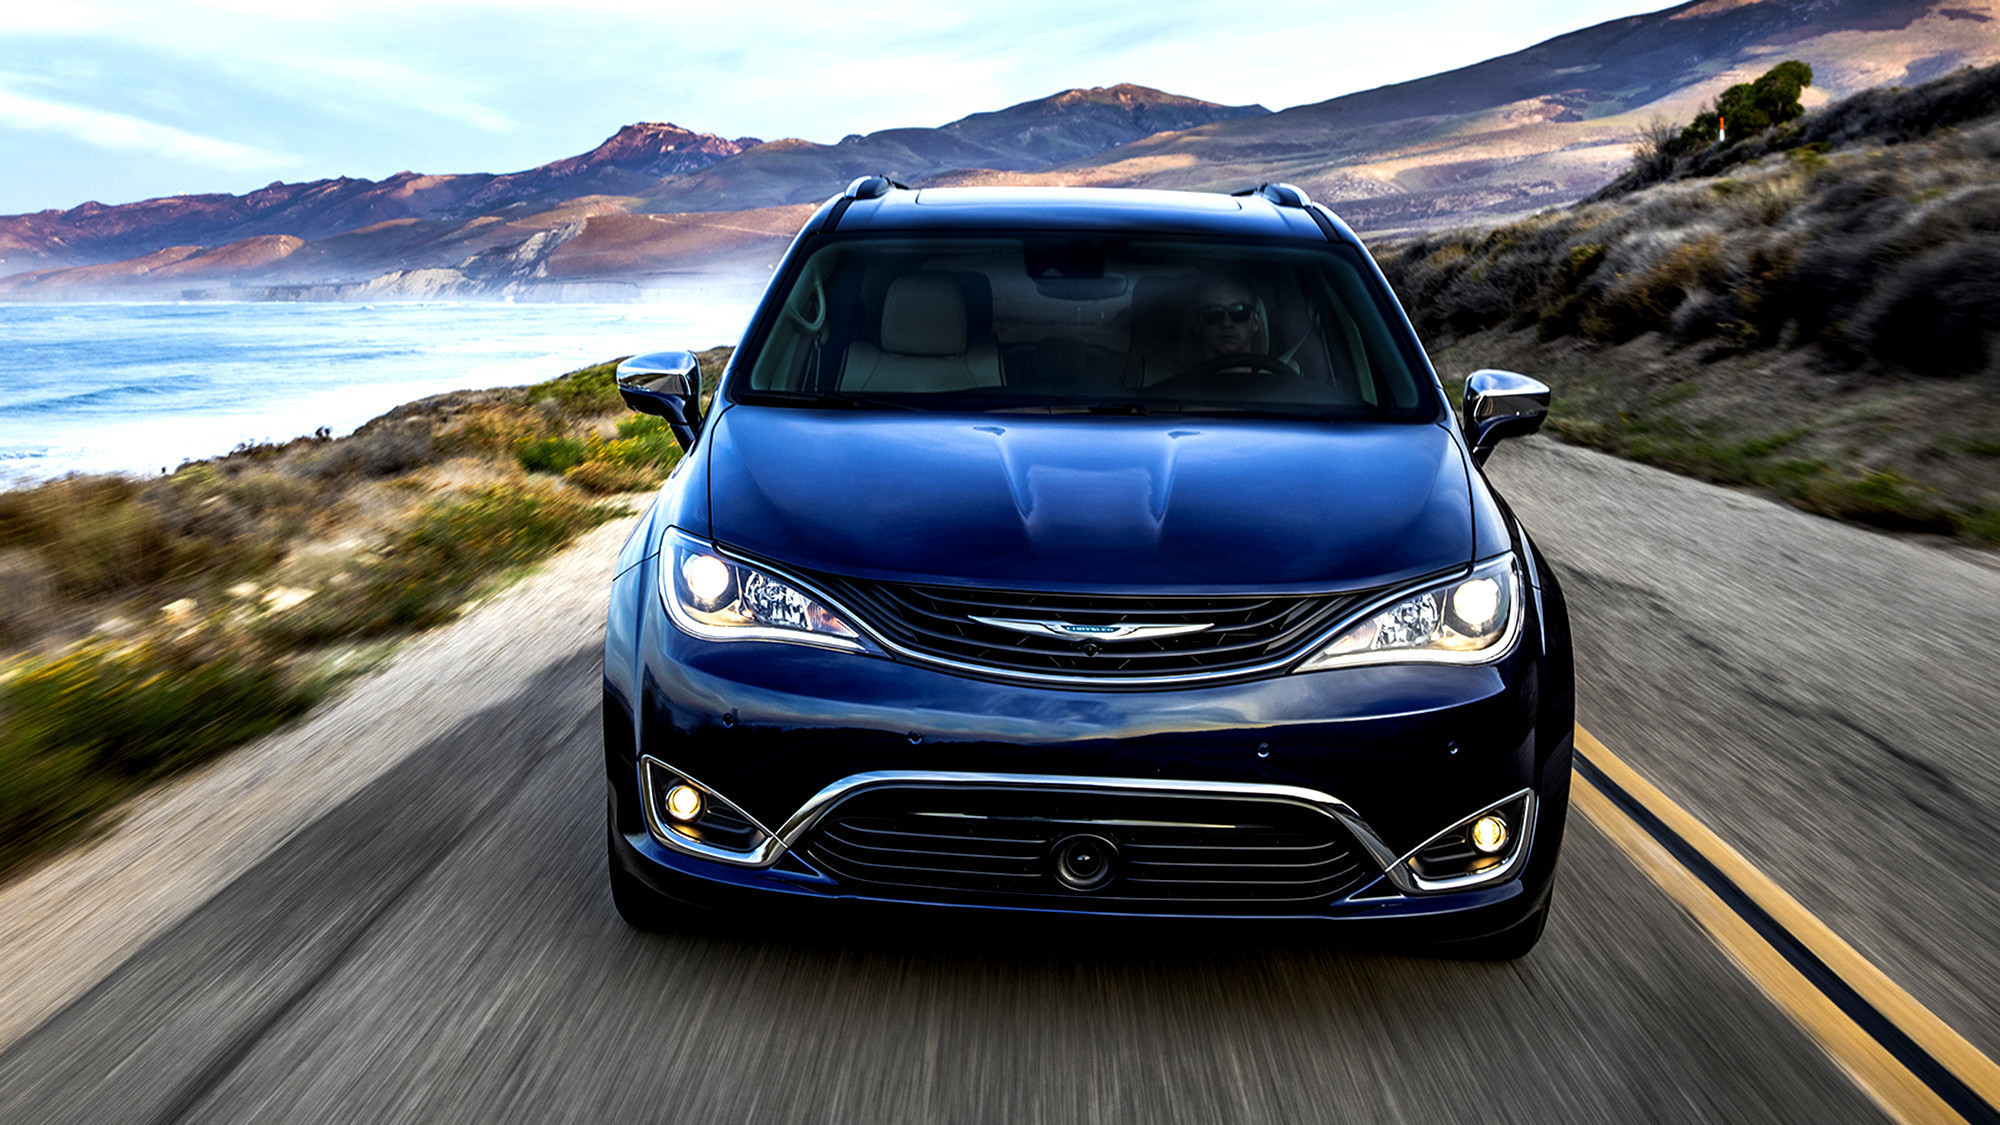 Town And Country Toyota >> 2017 Chrysler Pacifica: America's first plug-in hybrid minivan - LA Times